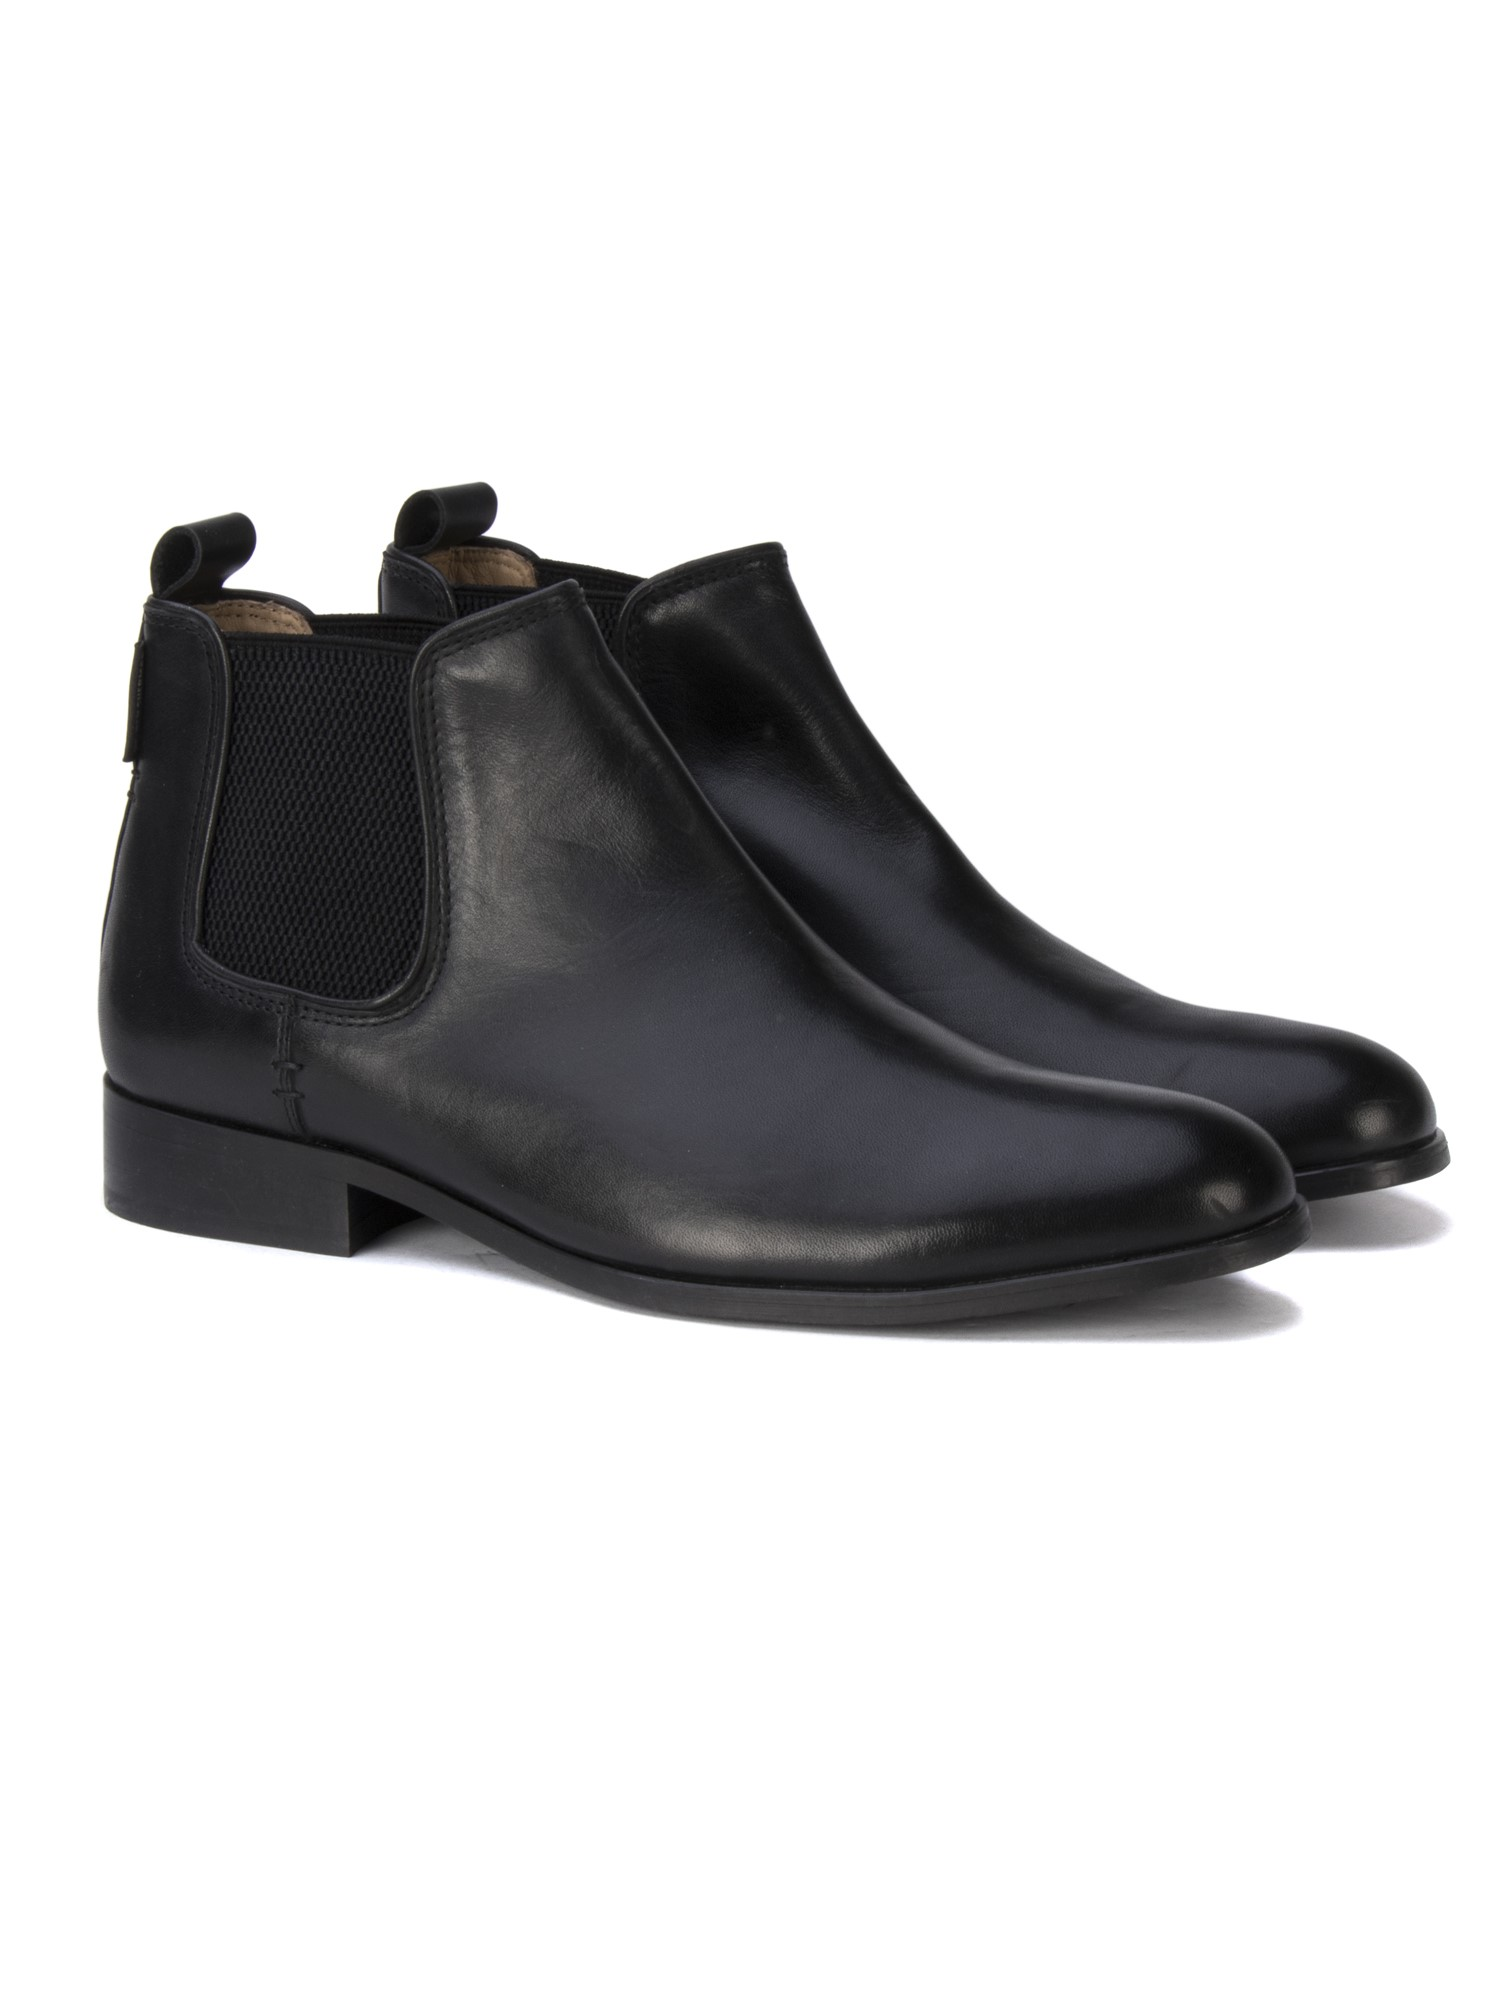 Ben Sherman Black Chelsea Boot